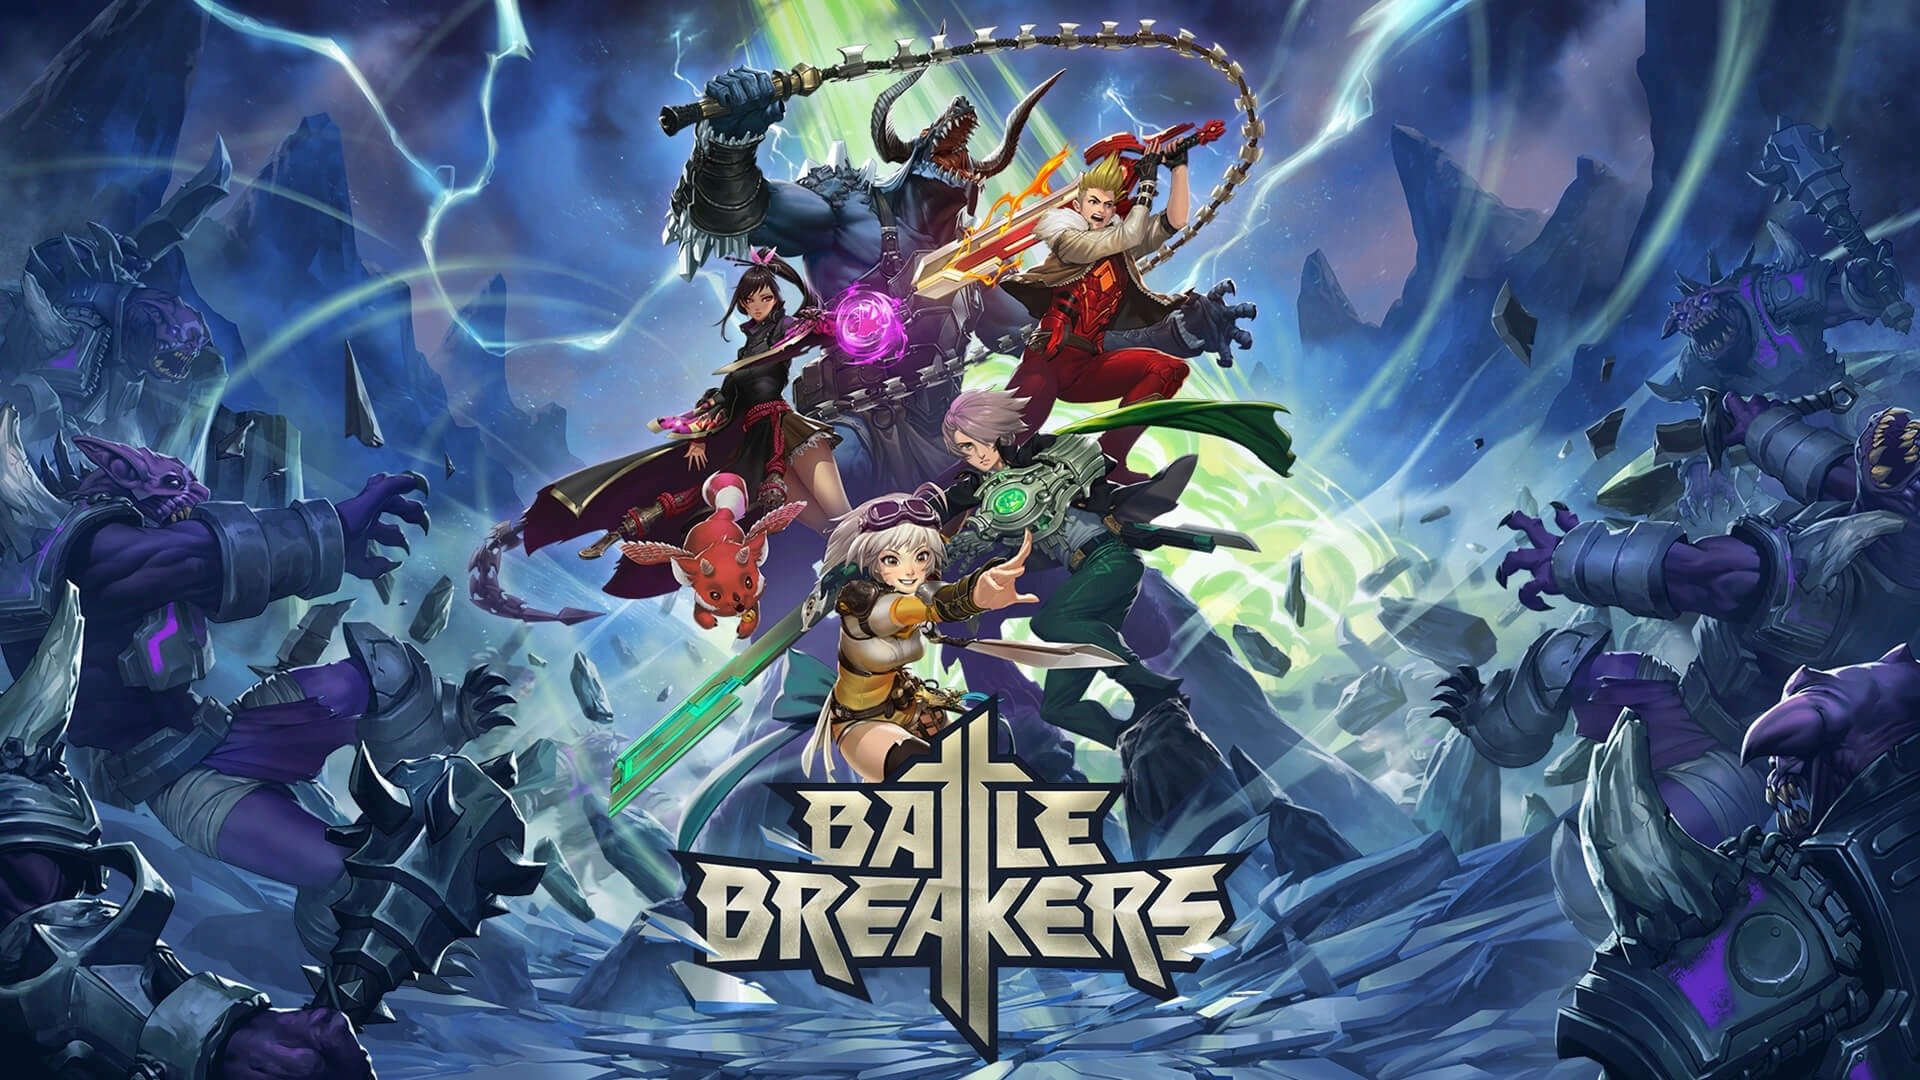 Two Years After Soft Launch, Battle Breakers Finally Arrives